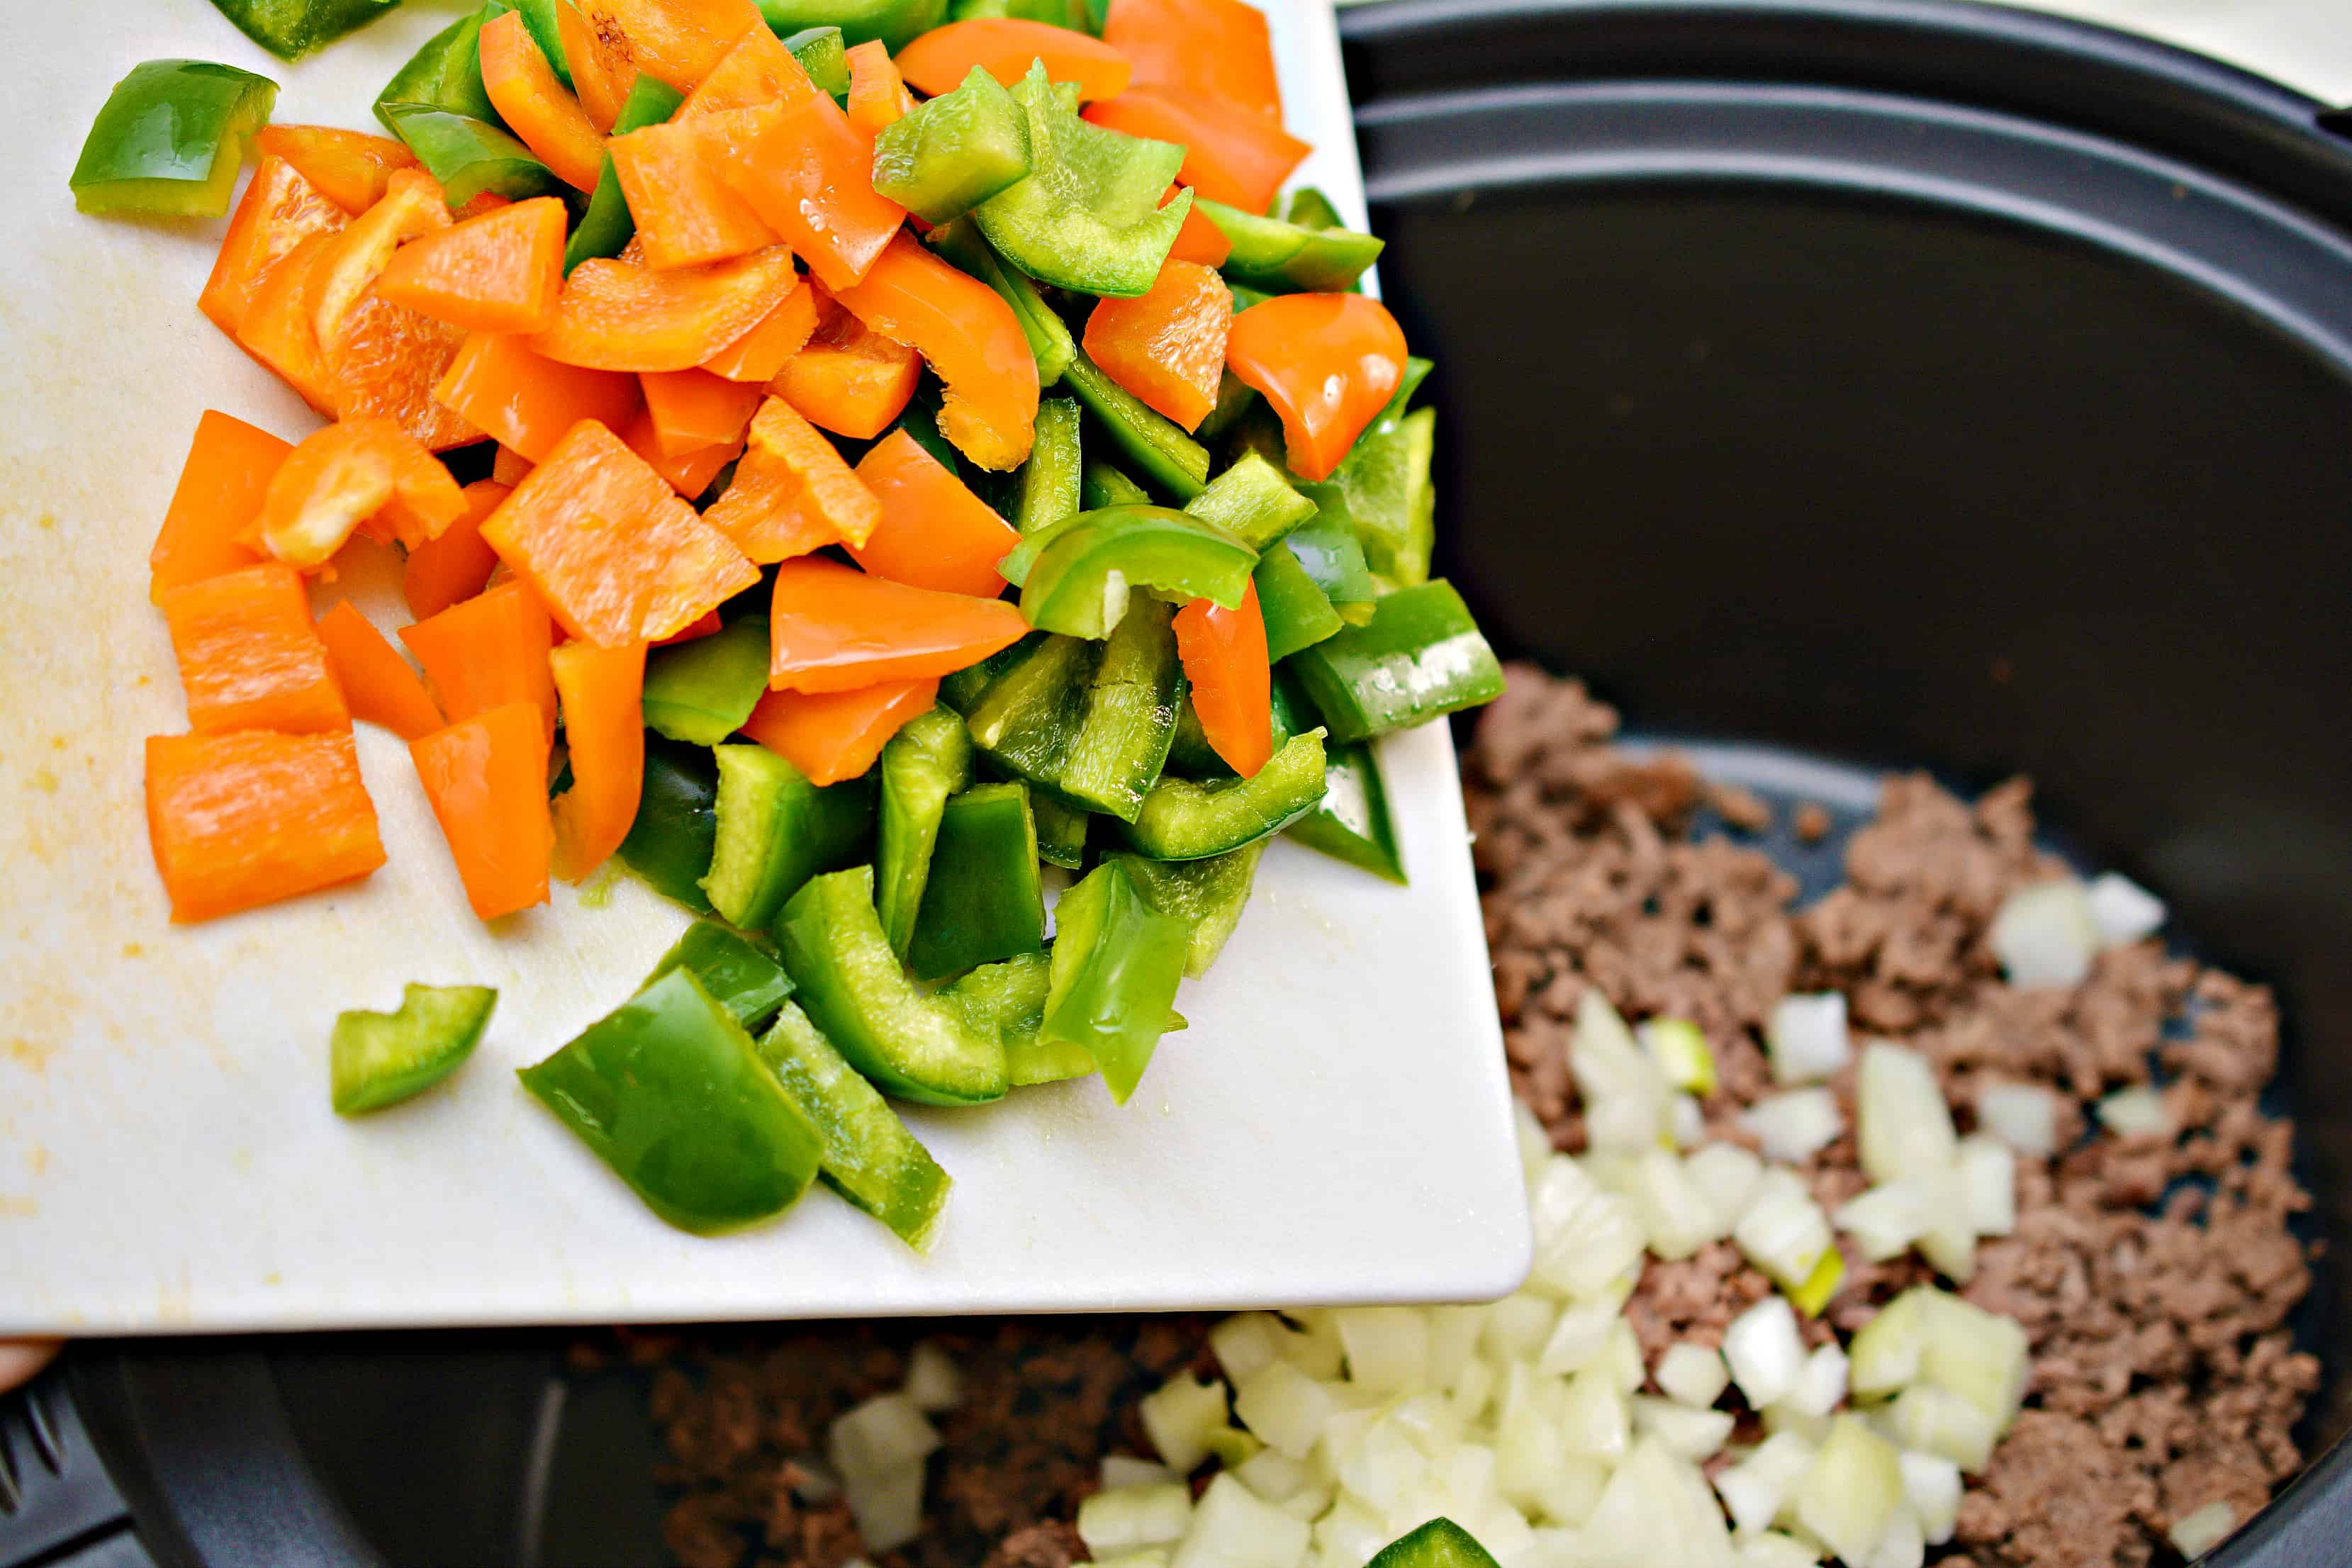 green and orange diced peppers being added to soup